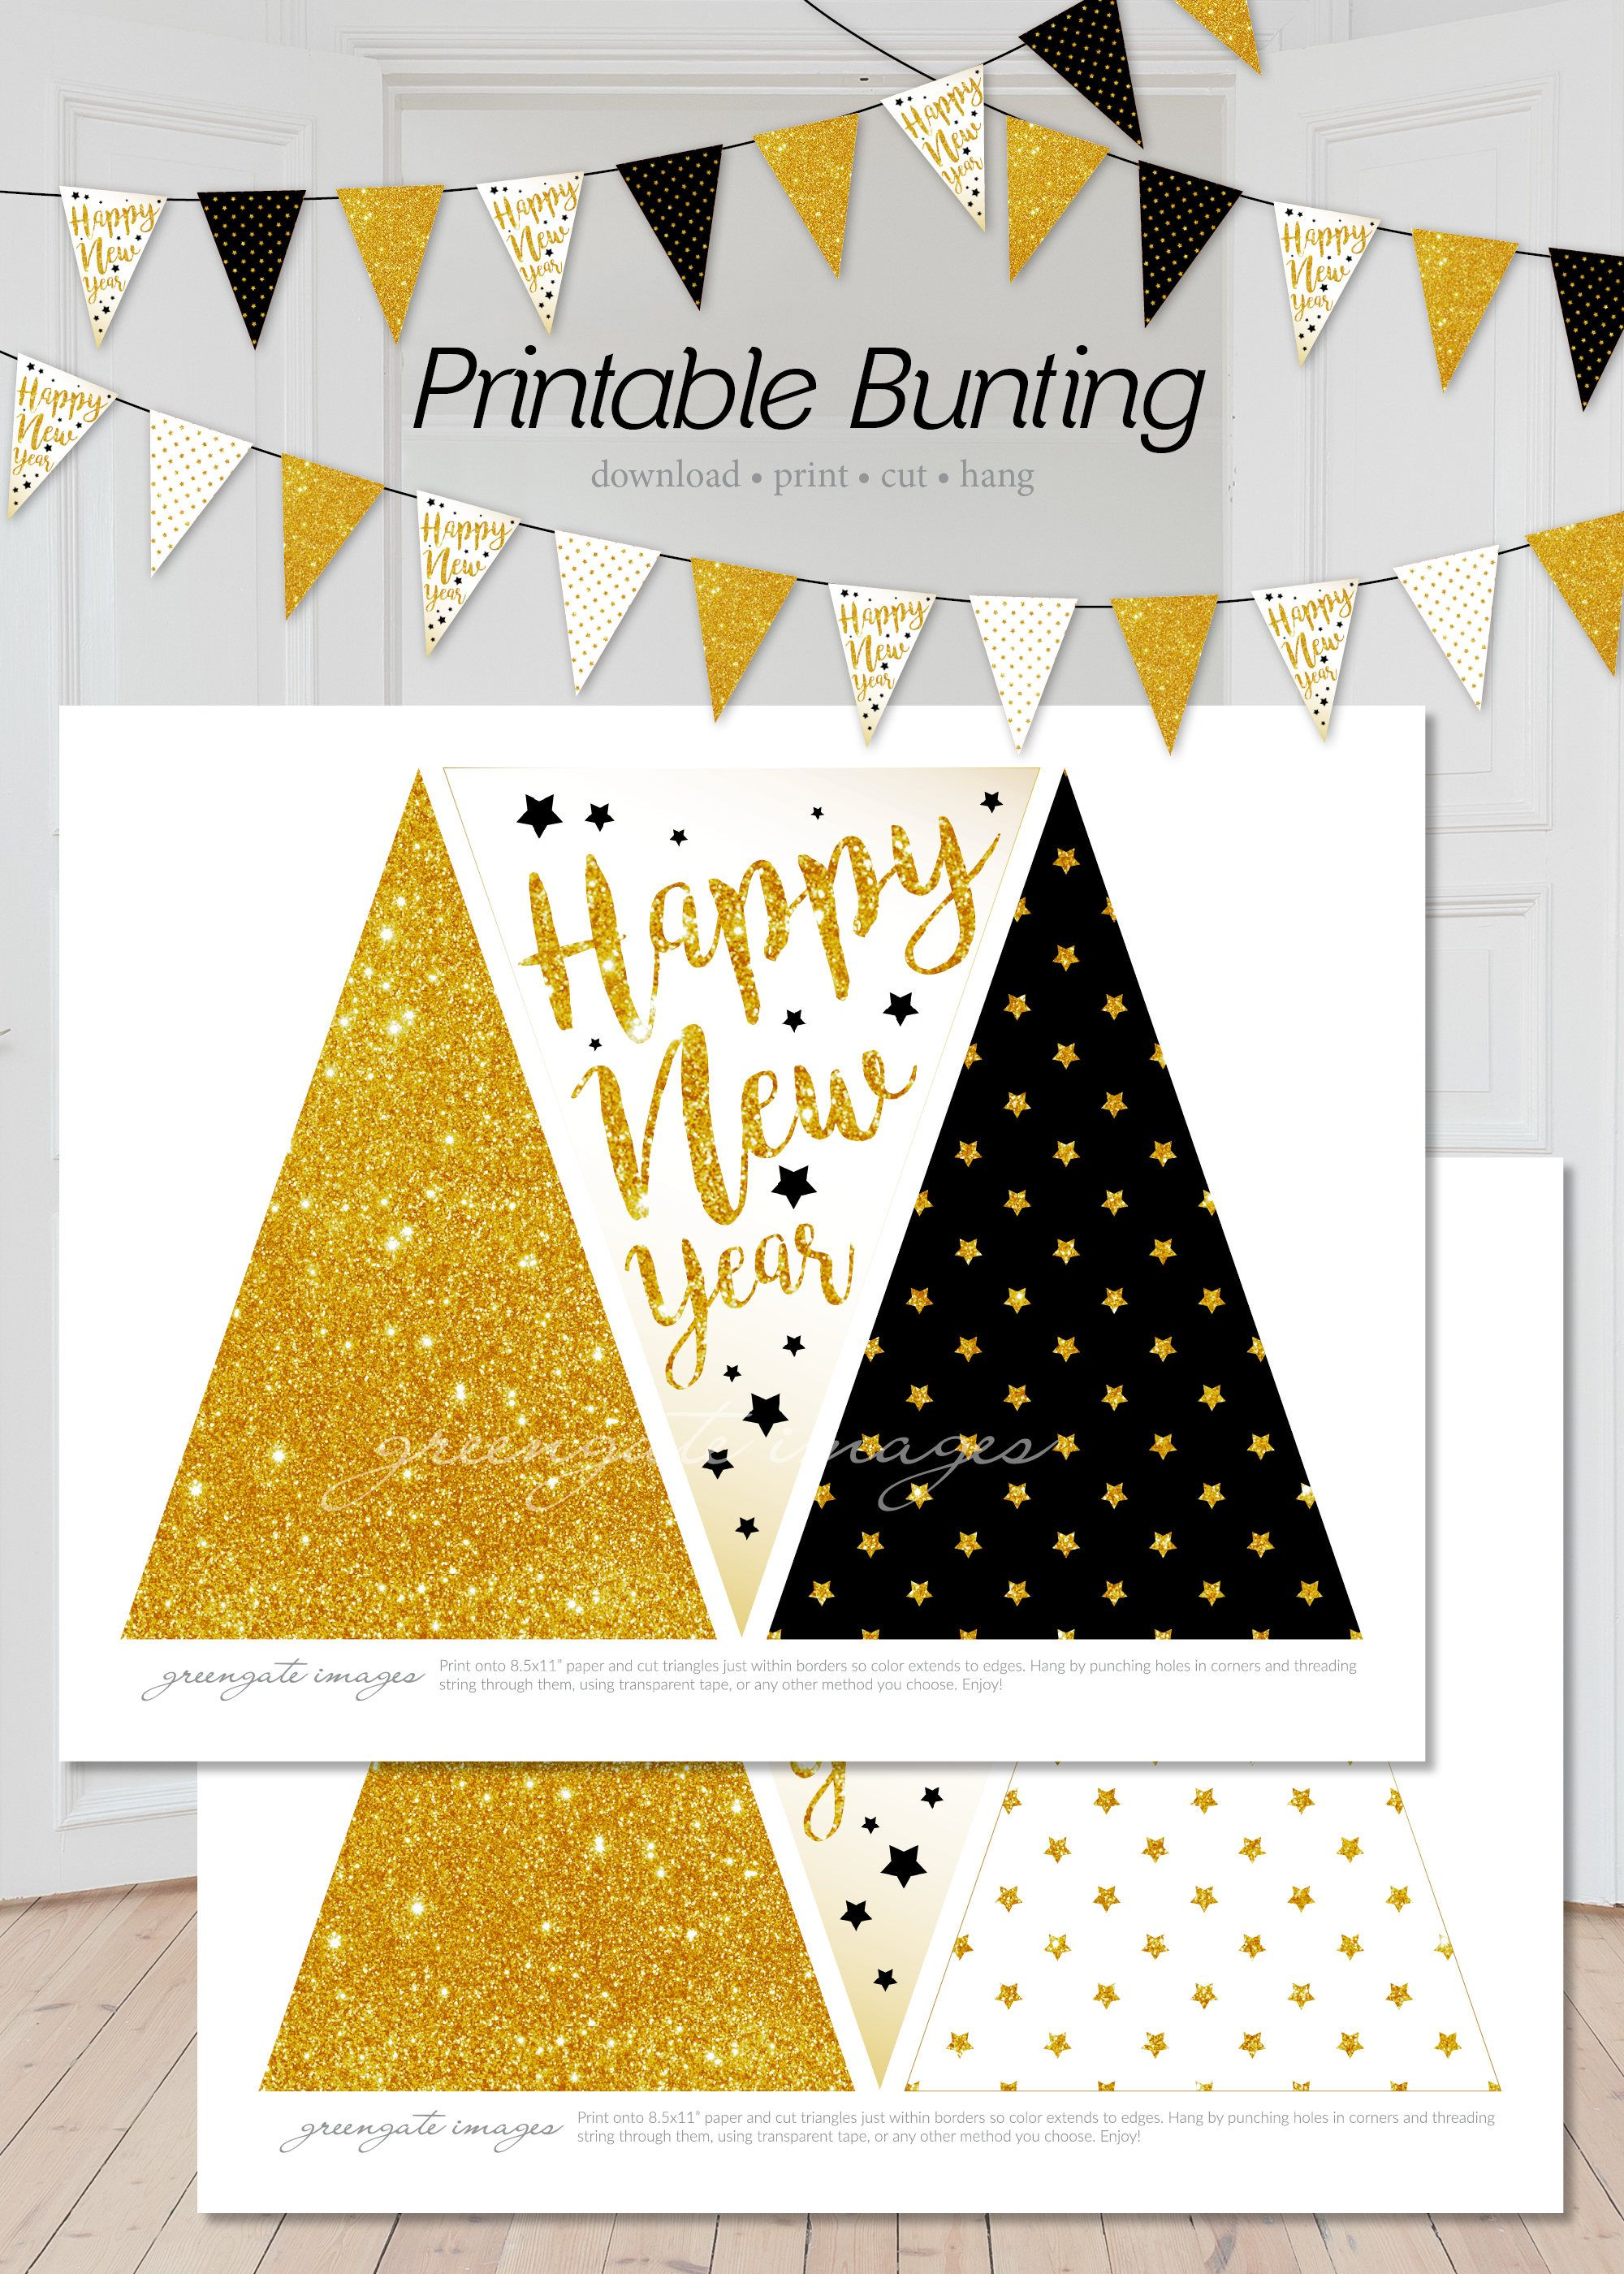 happy new year printable bunting download digital banner pdf garland party decor new years eve printable black and gold bunting by greengateimages